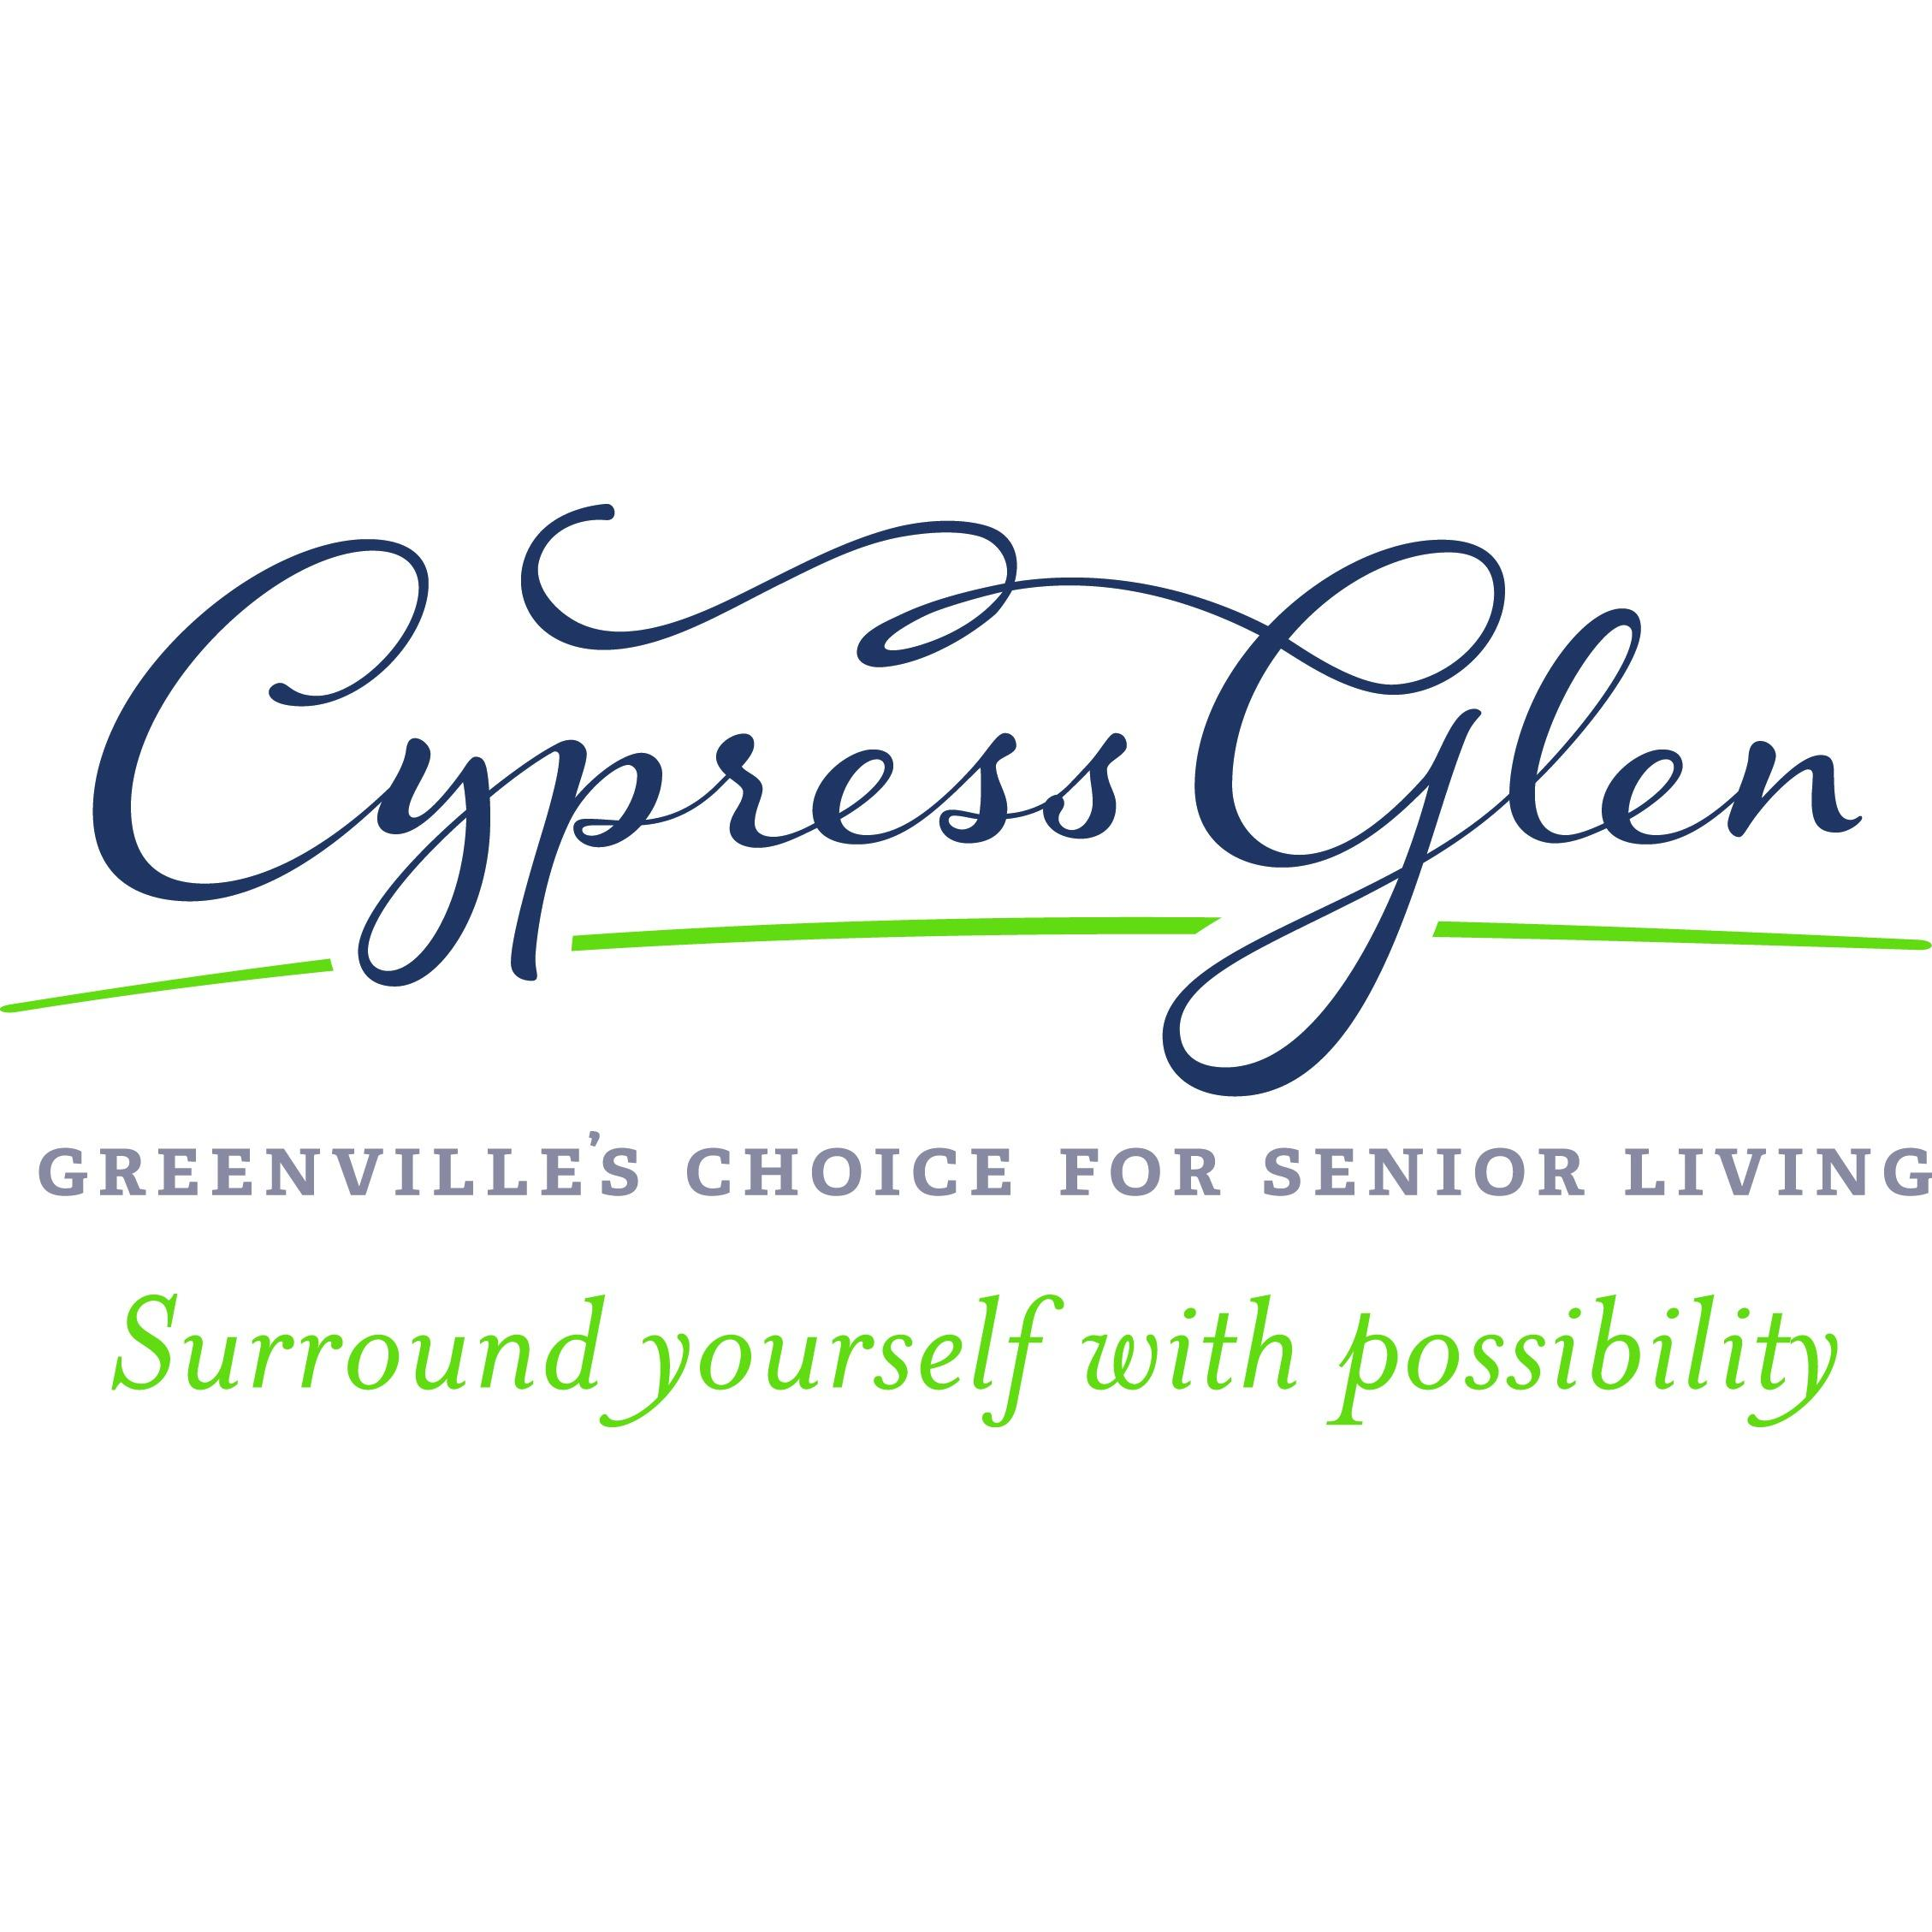 Cypress Glen Retirement Community